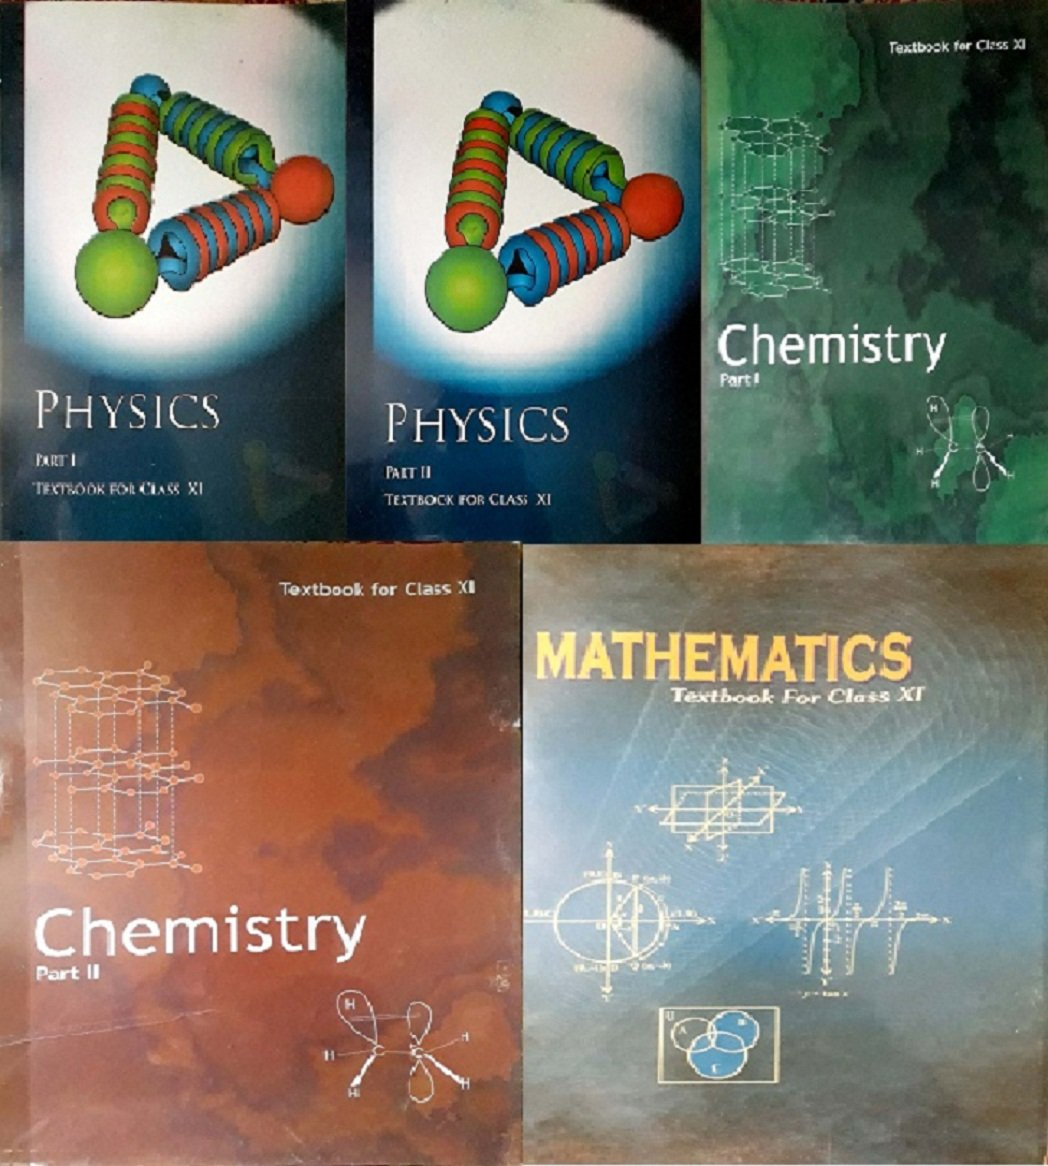 NCERT Physics Part 1 & 2, Chemistry Part -1 & 2 And Mathematics